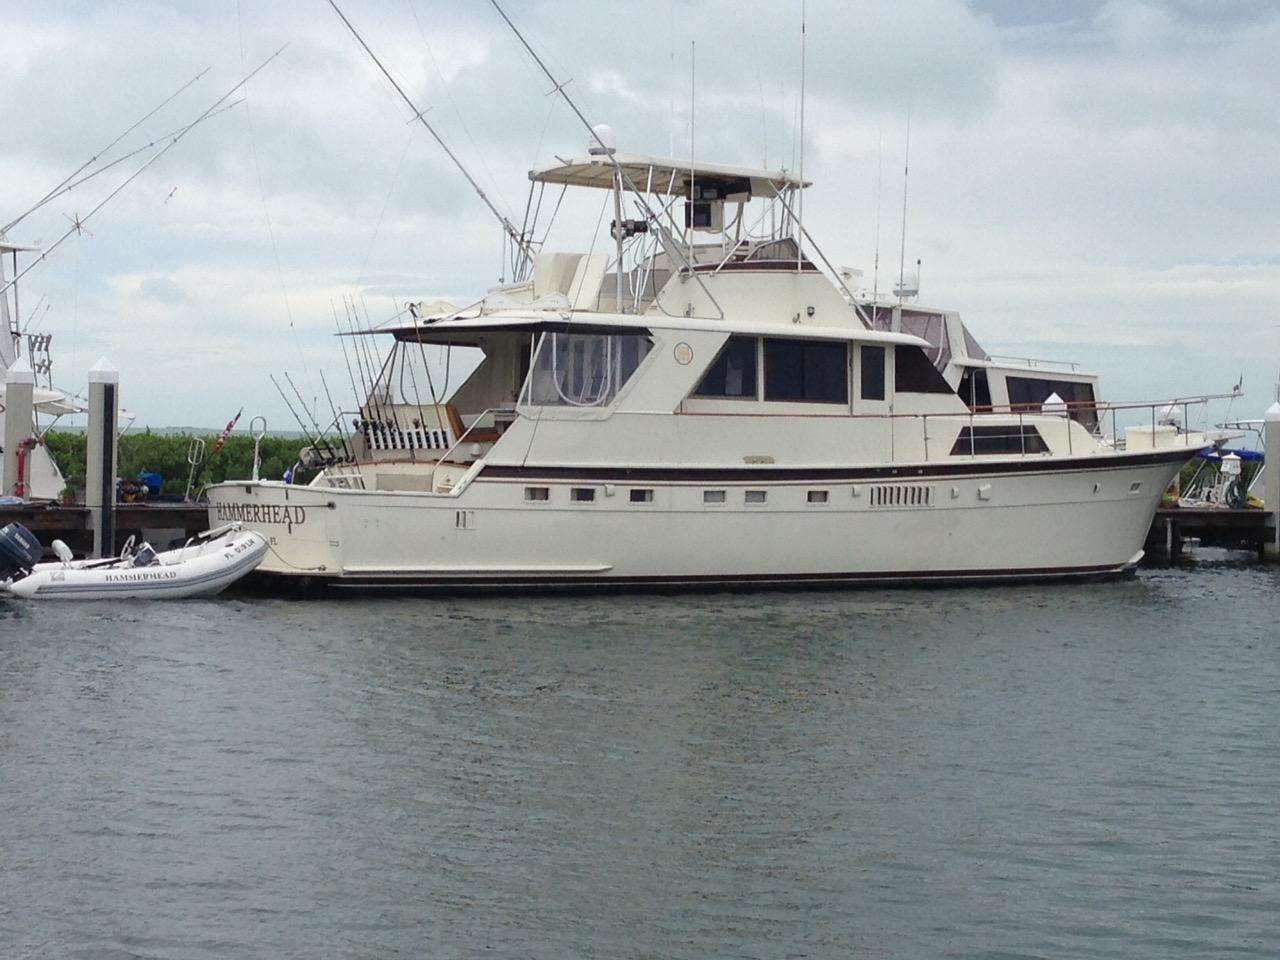 58 Hatteras 1975 Hammerhead Fort Lauderdale Florida Sold On 2017 06 26 By Denison Yacht Sales